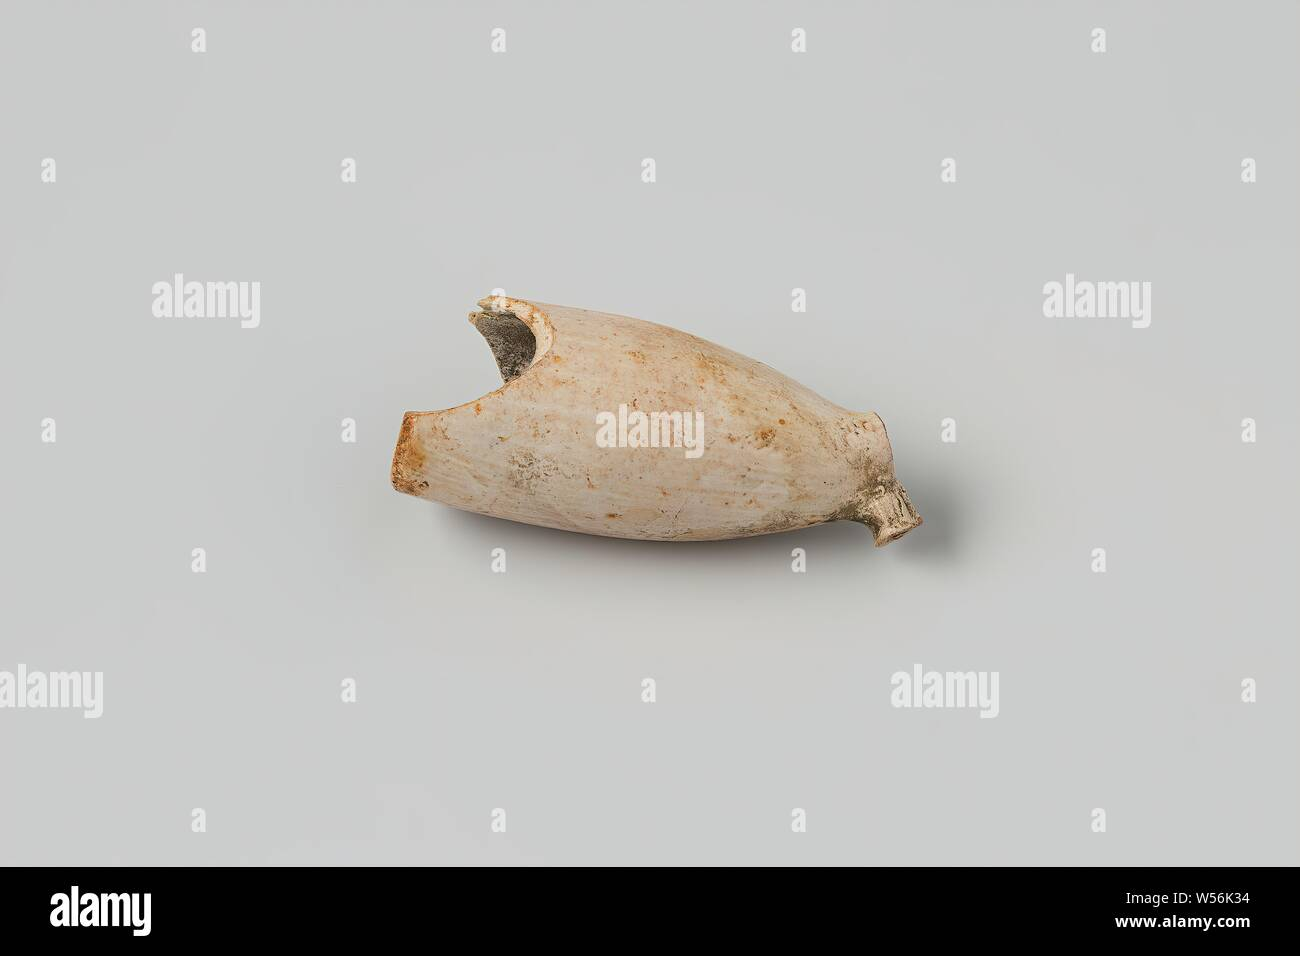 Fragment of a pipe bowl from the wreck of the East Indiamen Hollandia, 1 pipe bowl, Annet, Dutch East India Company, Hollandia (ship), anonymous, Netherlands, 1700 - in or before 13-Aug-1743, pipe clay, l 5 cm × d 2.1 cm Stock Photo